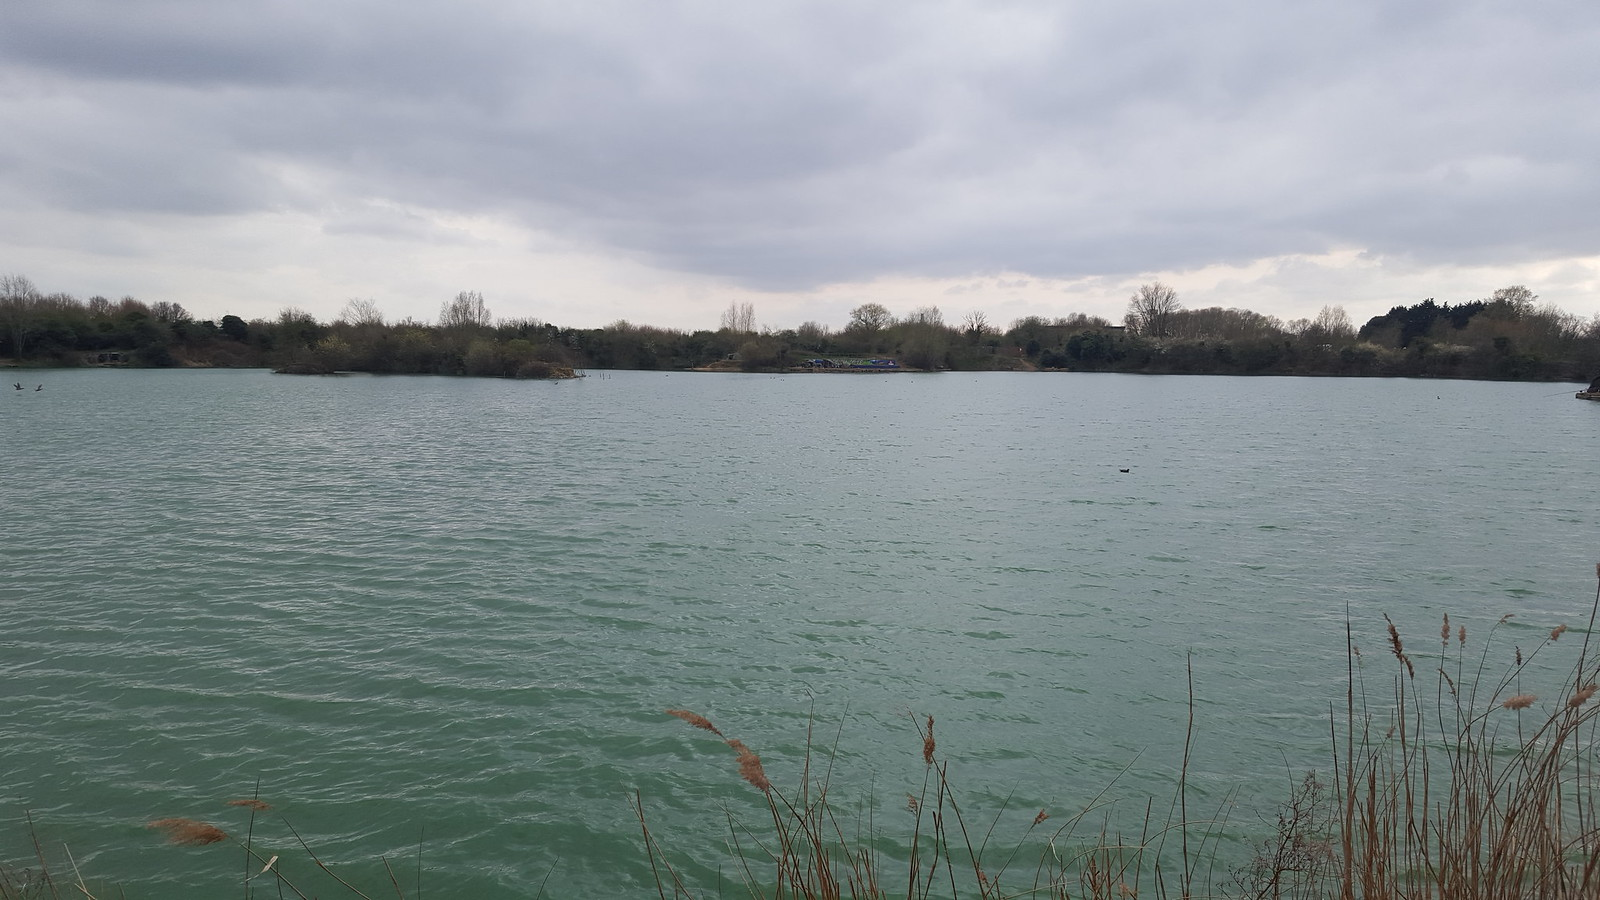 Dagenham parks, rivers and ponds